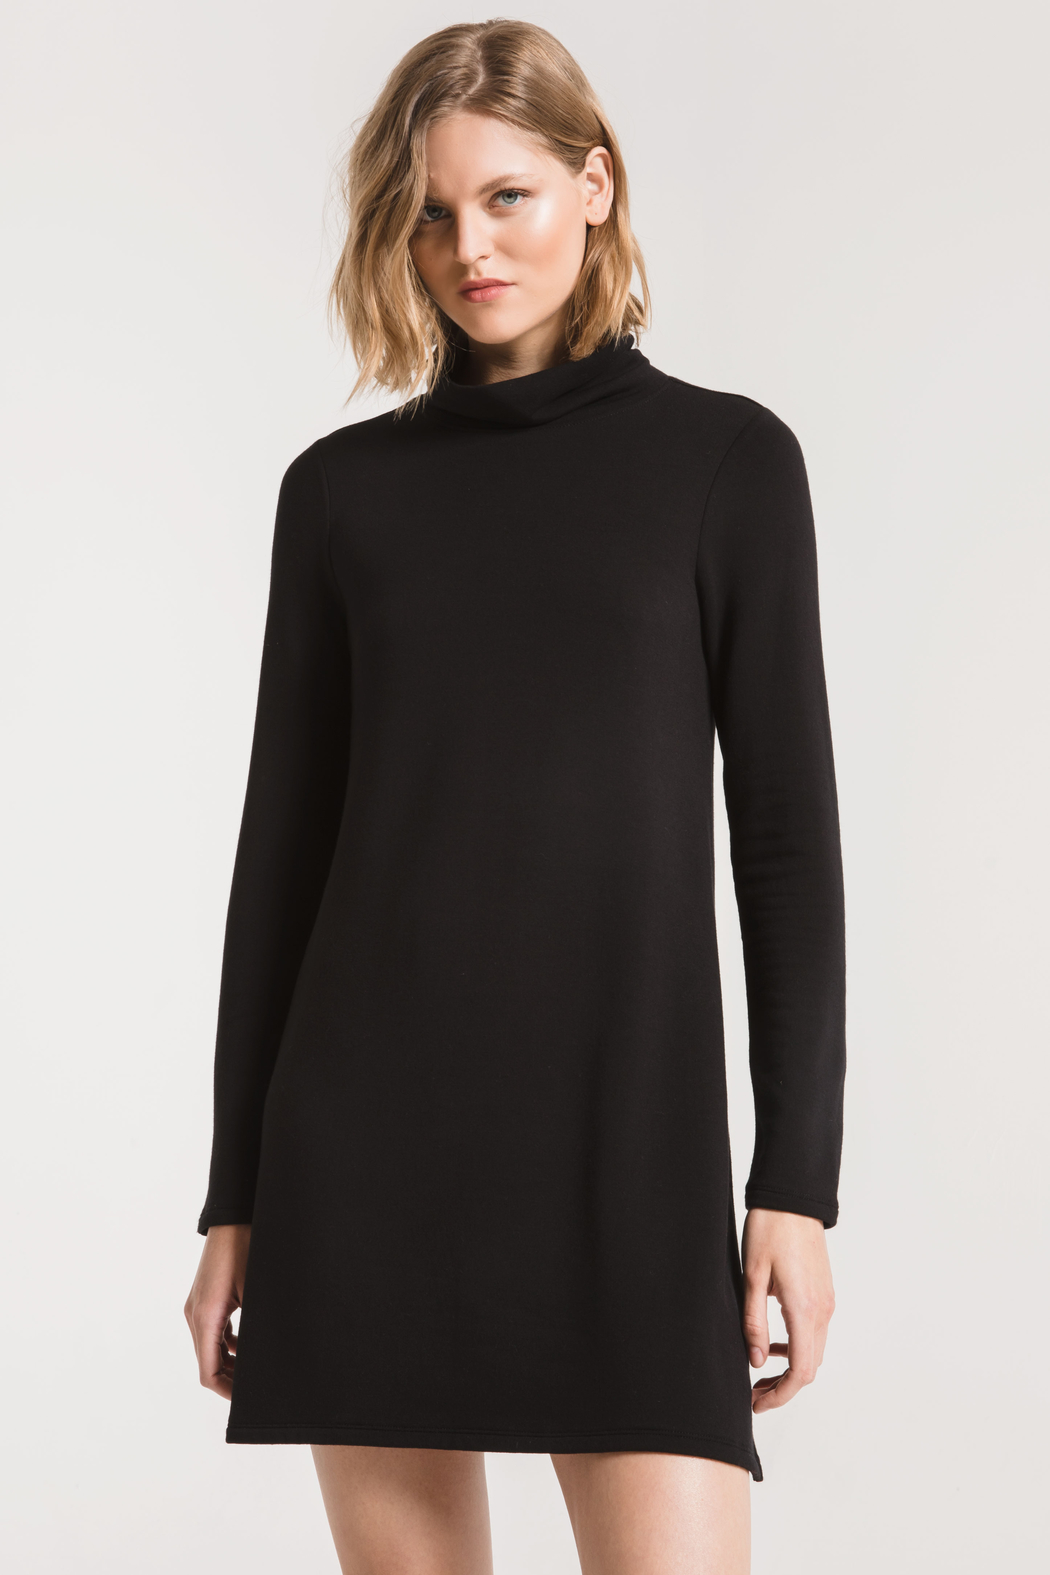 z supply The Premium Fleece Turtleneck Dress - Front Cropped Image